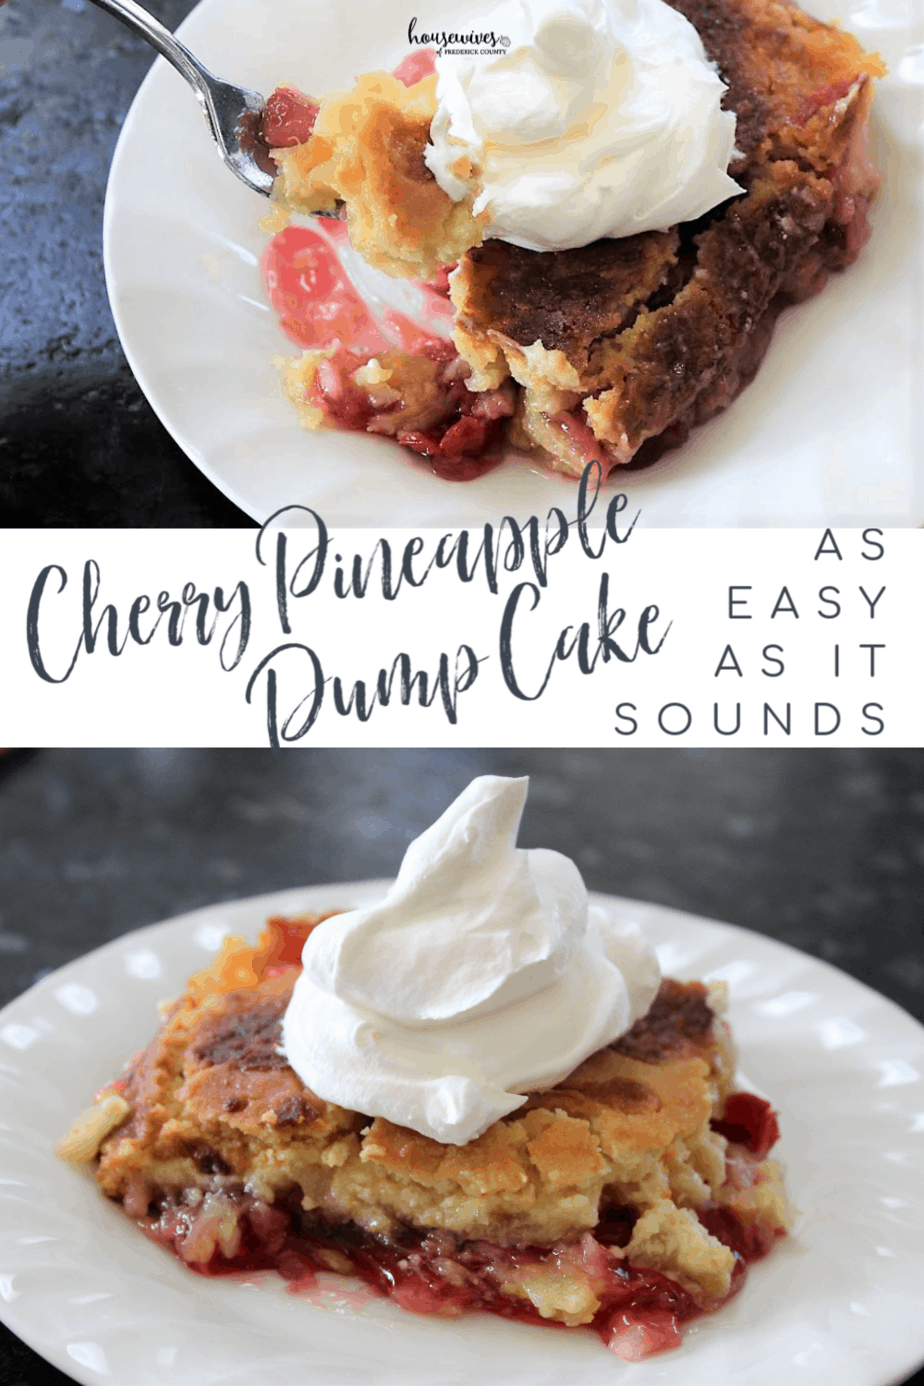 Cherry Pineapple Dump Cake: As Easy As It Sounds